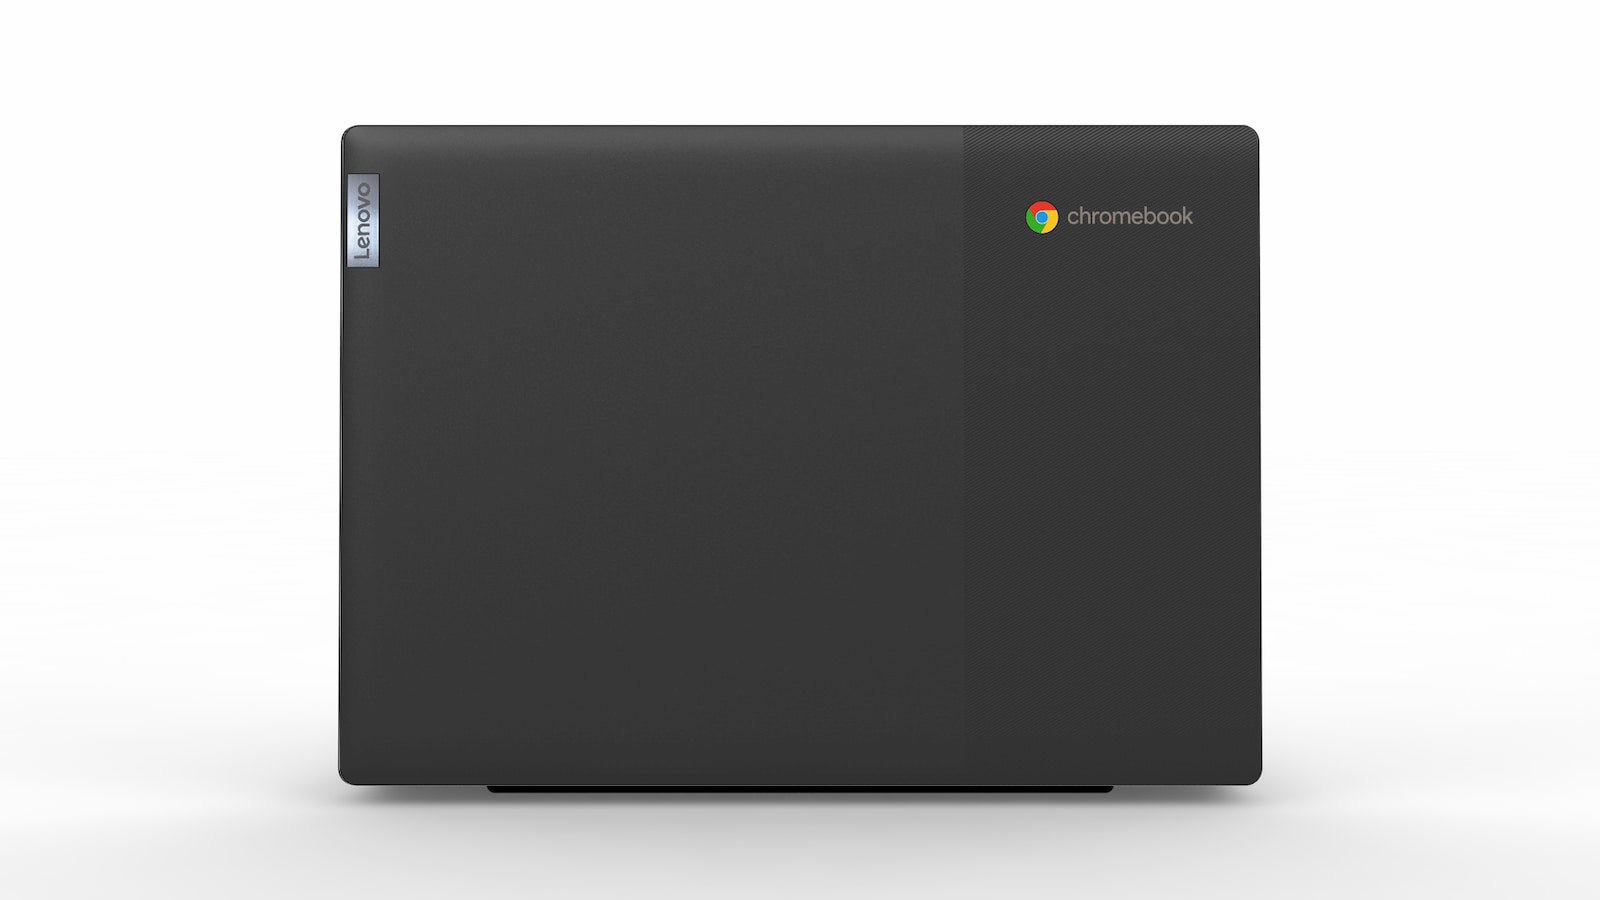 This could be the first $170 Chromebook actually worth buying